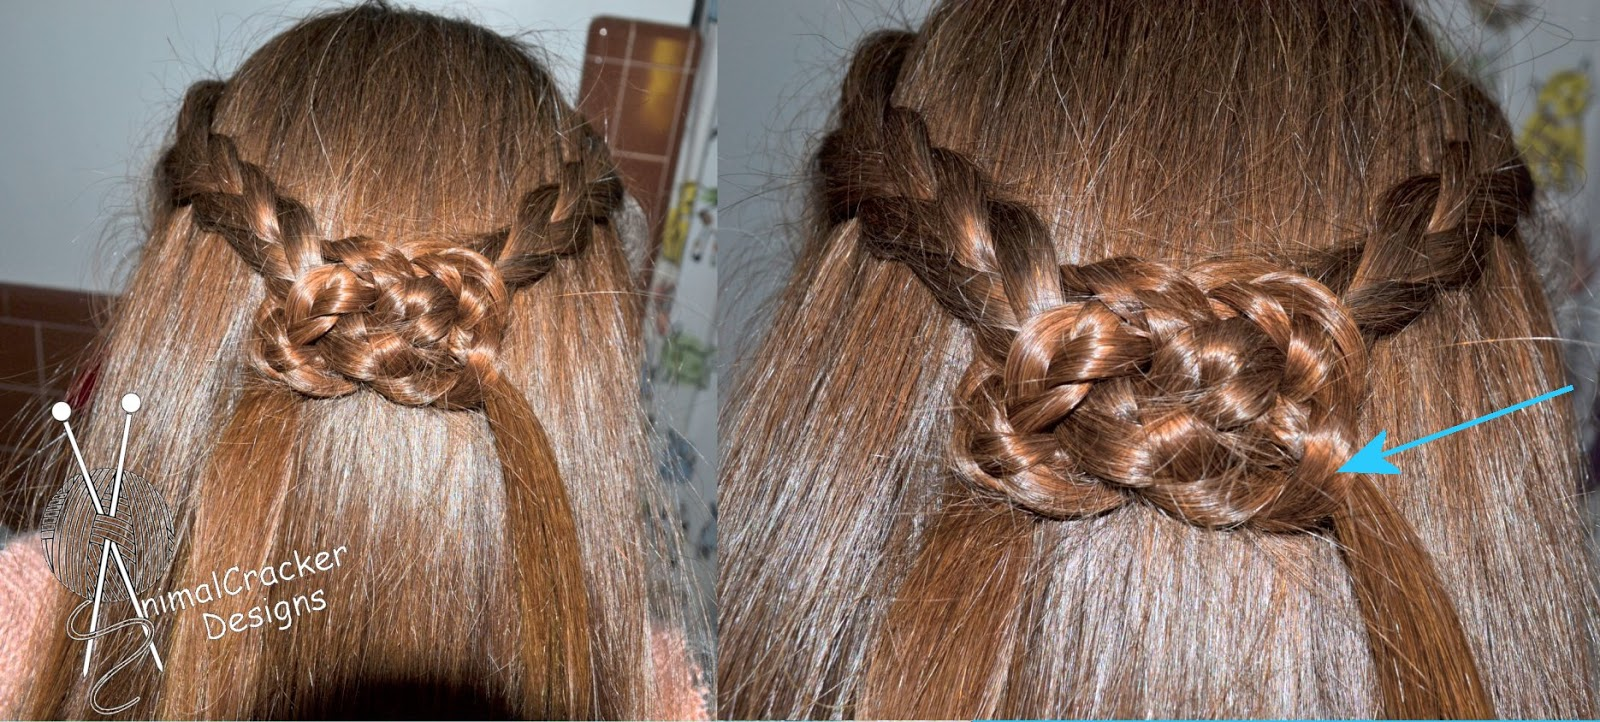 The Other Sink: Braided Celtic Hair Knot